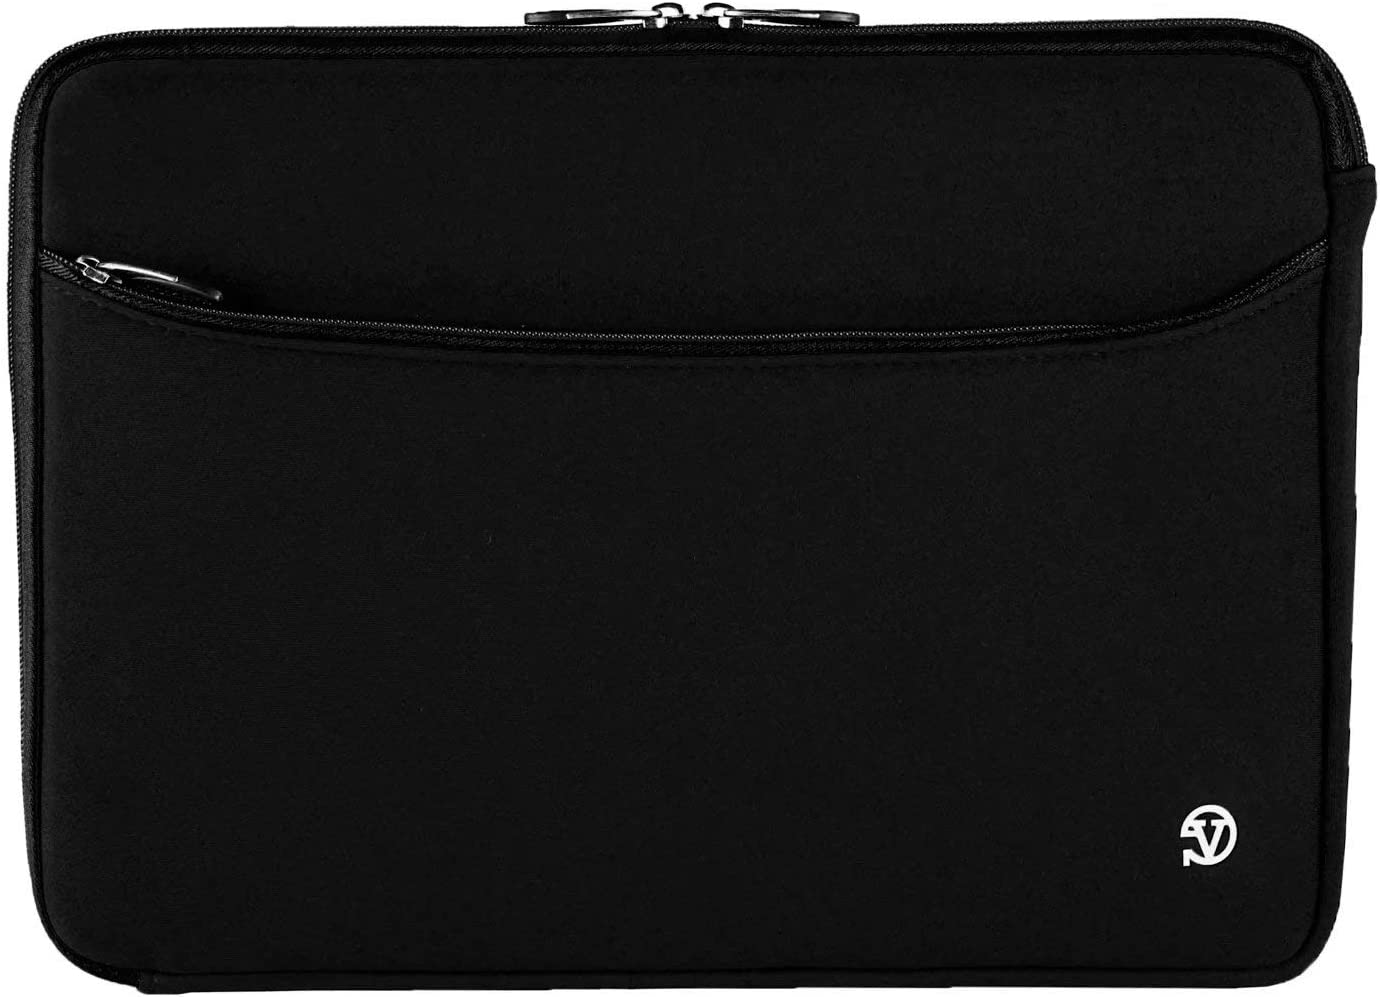 17.3 Inch Shock Resistant Laptop Sleeve Bag Fit for Lenovo Legion Y540, IdeaPad L340, L340 Gaming, 330, ThinkPad P72, P73, P71, for GigaByte Sabre 17 G8, Sabre 17 WB, for Razer Blade Pro 17